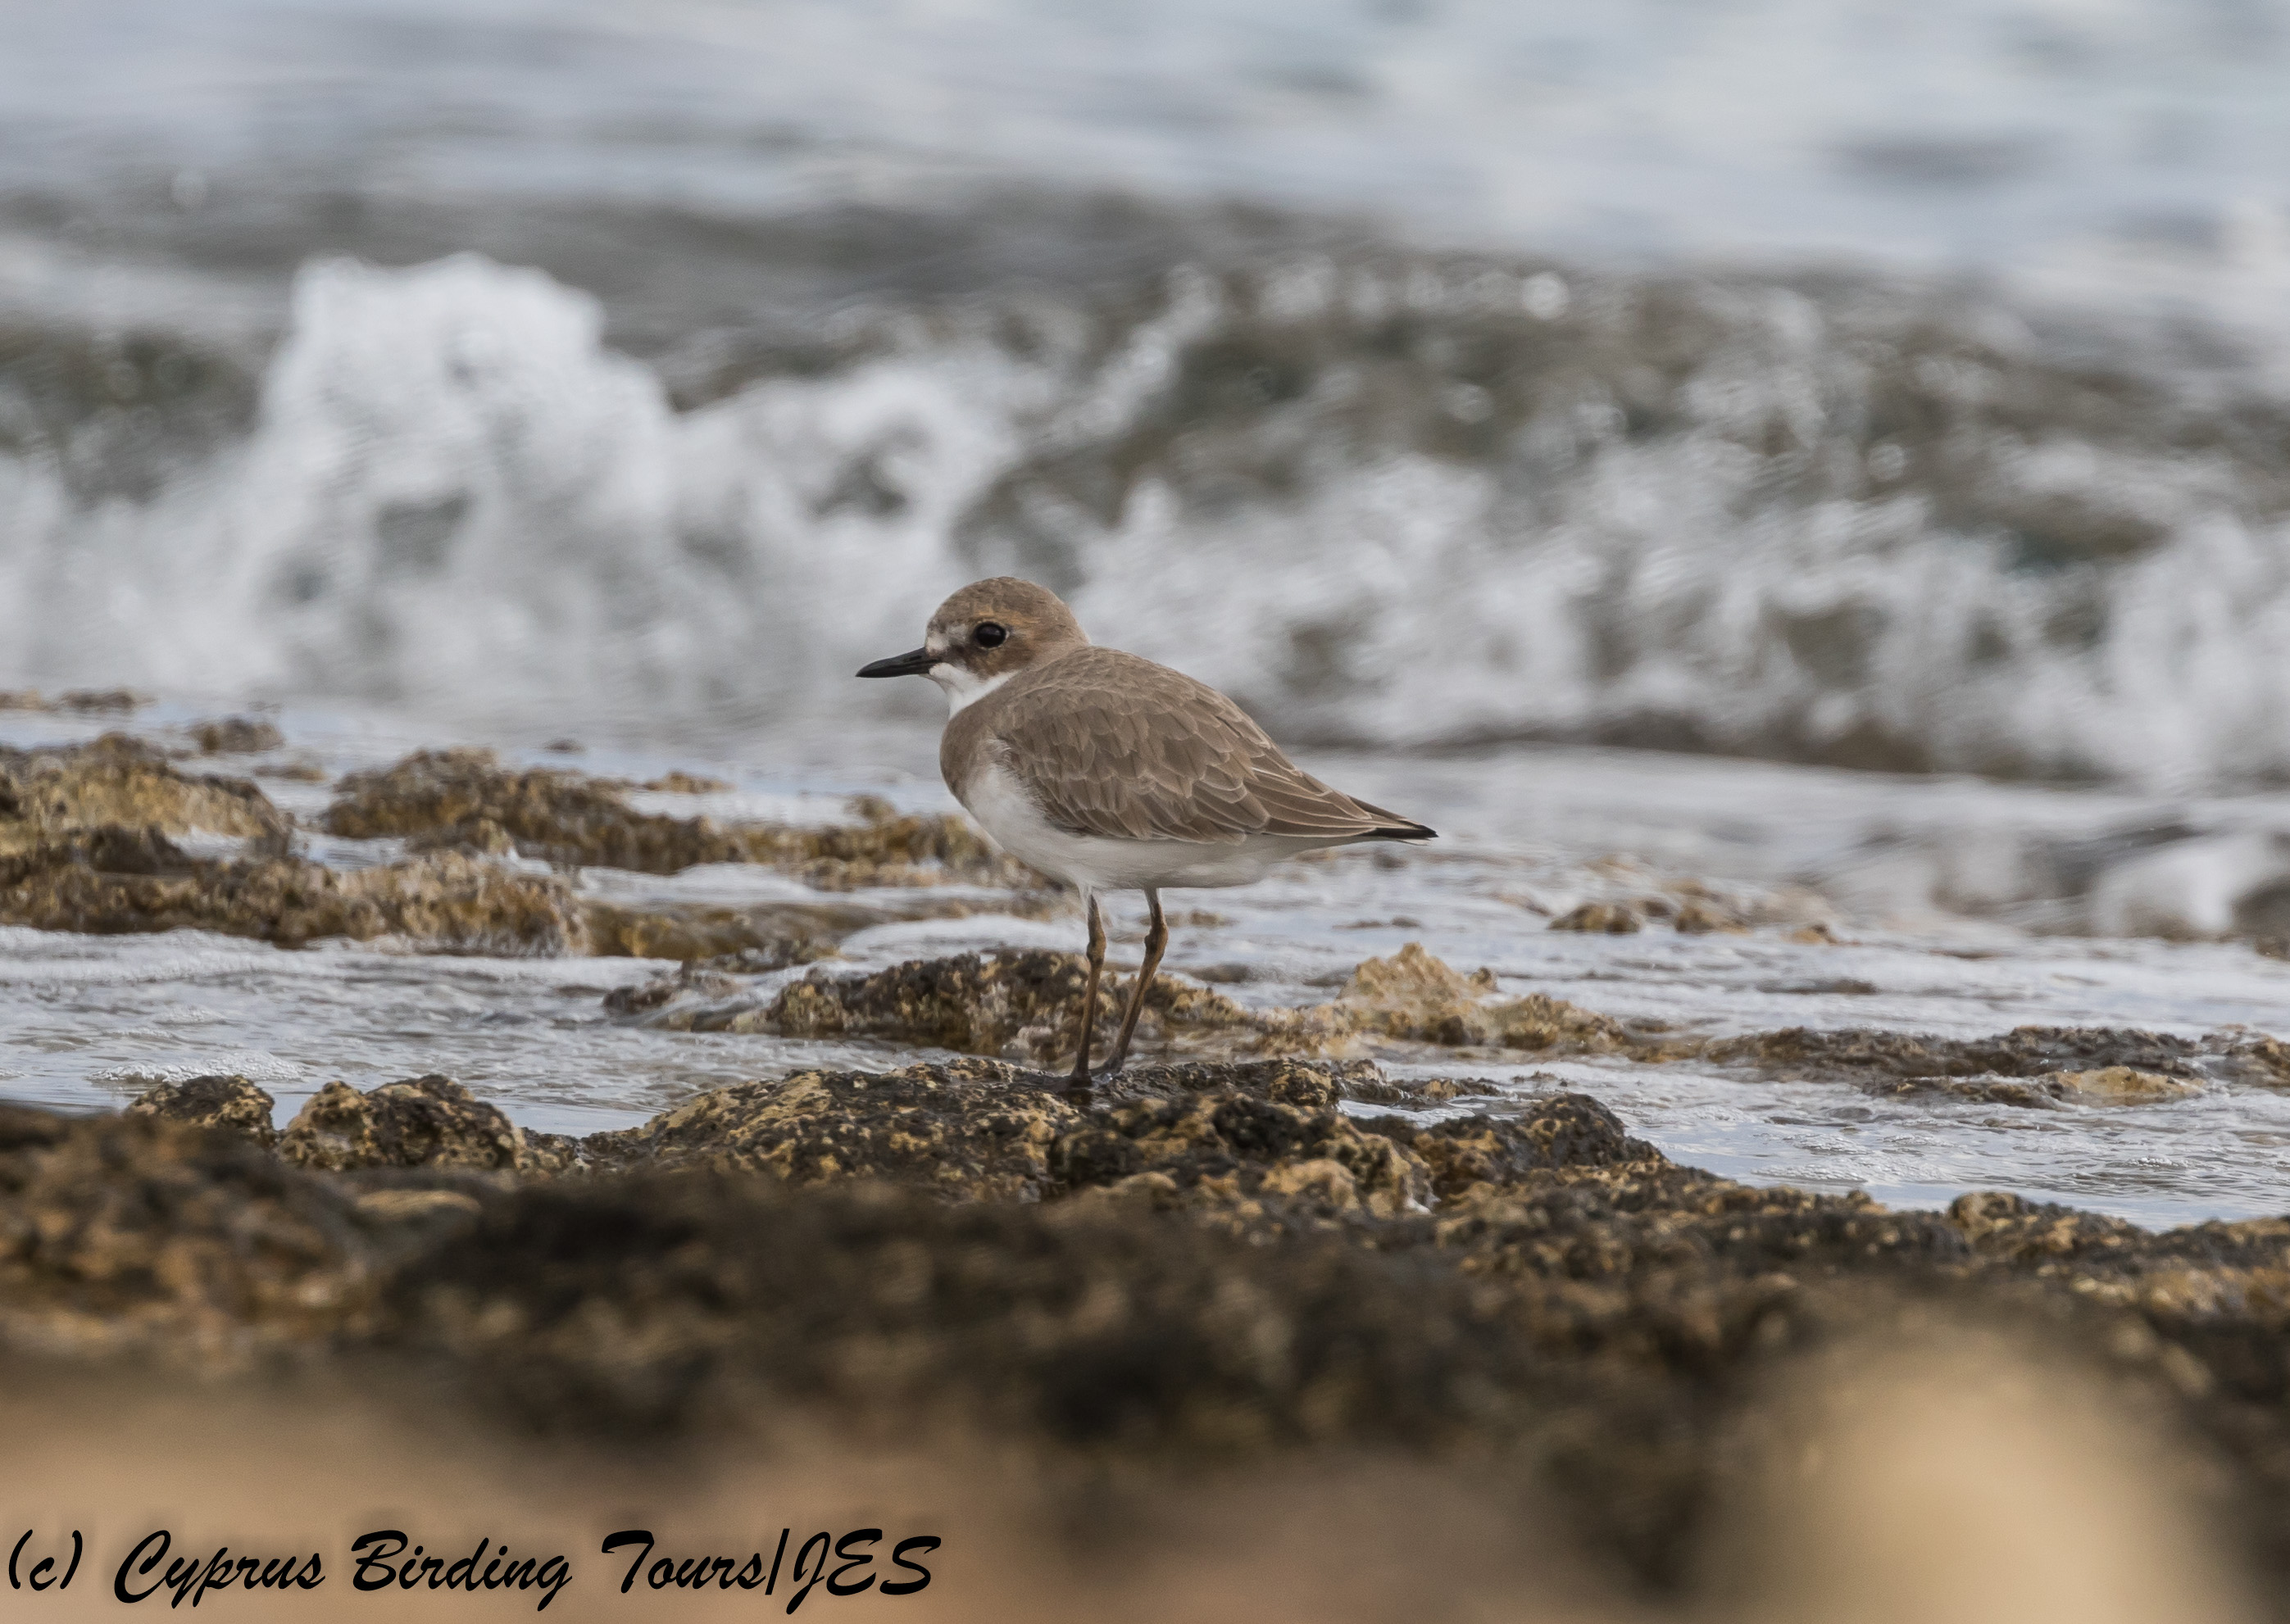 Greater Sandplover, Agios Trias, 28th November 2017 (c) Cyprus Birding Tours